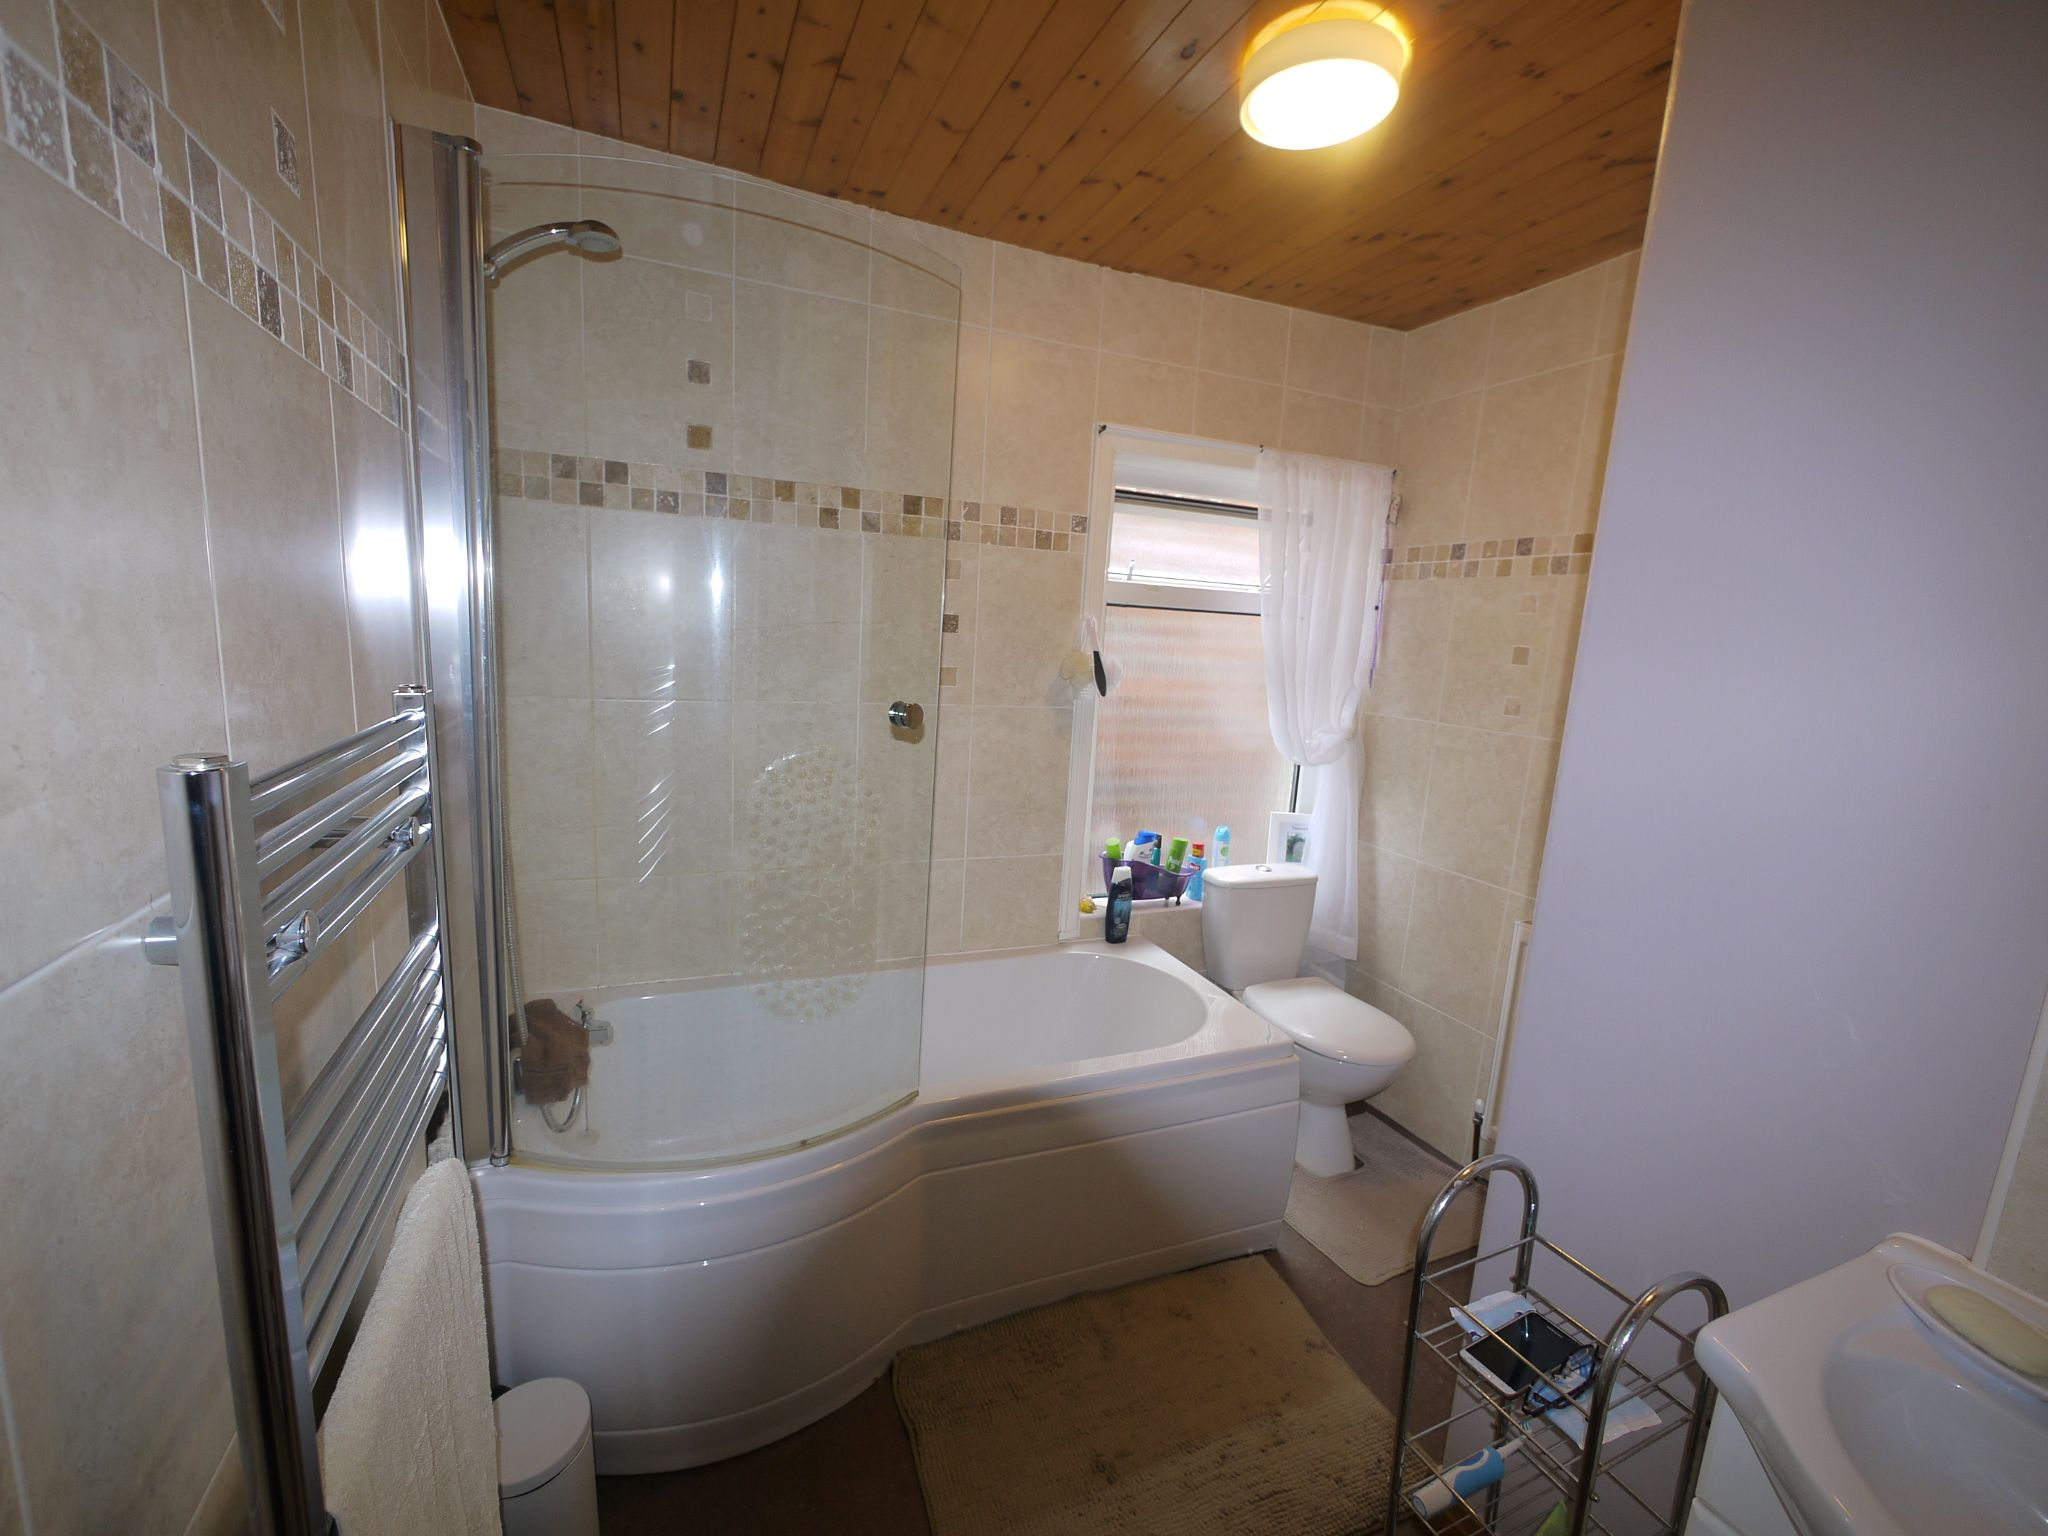 3 bedroom semi-detached house SSTC in Calderdale - Photograph 5.